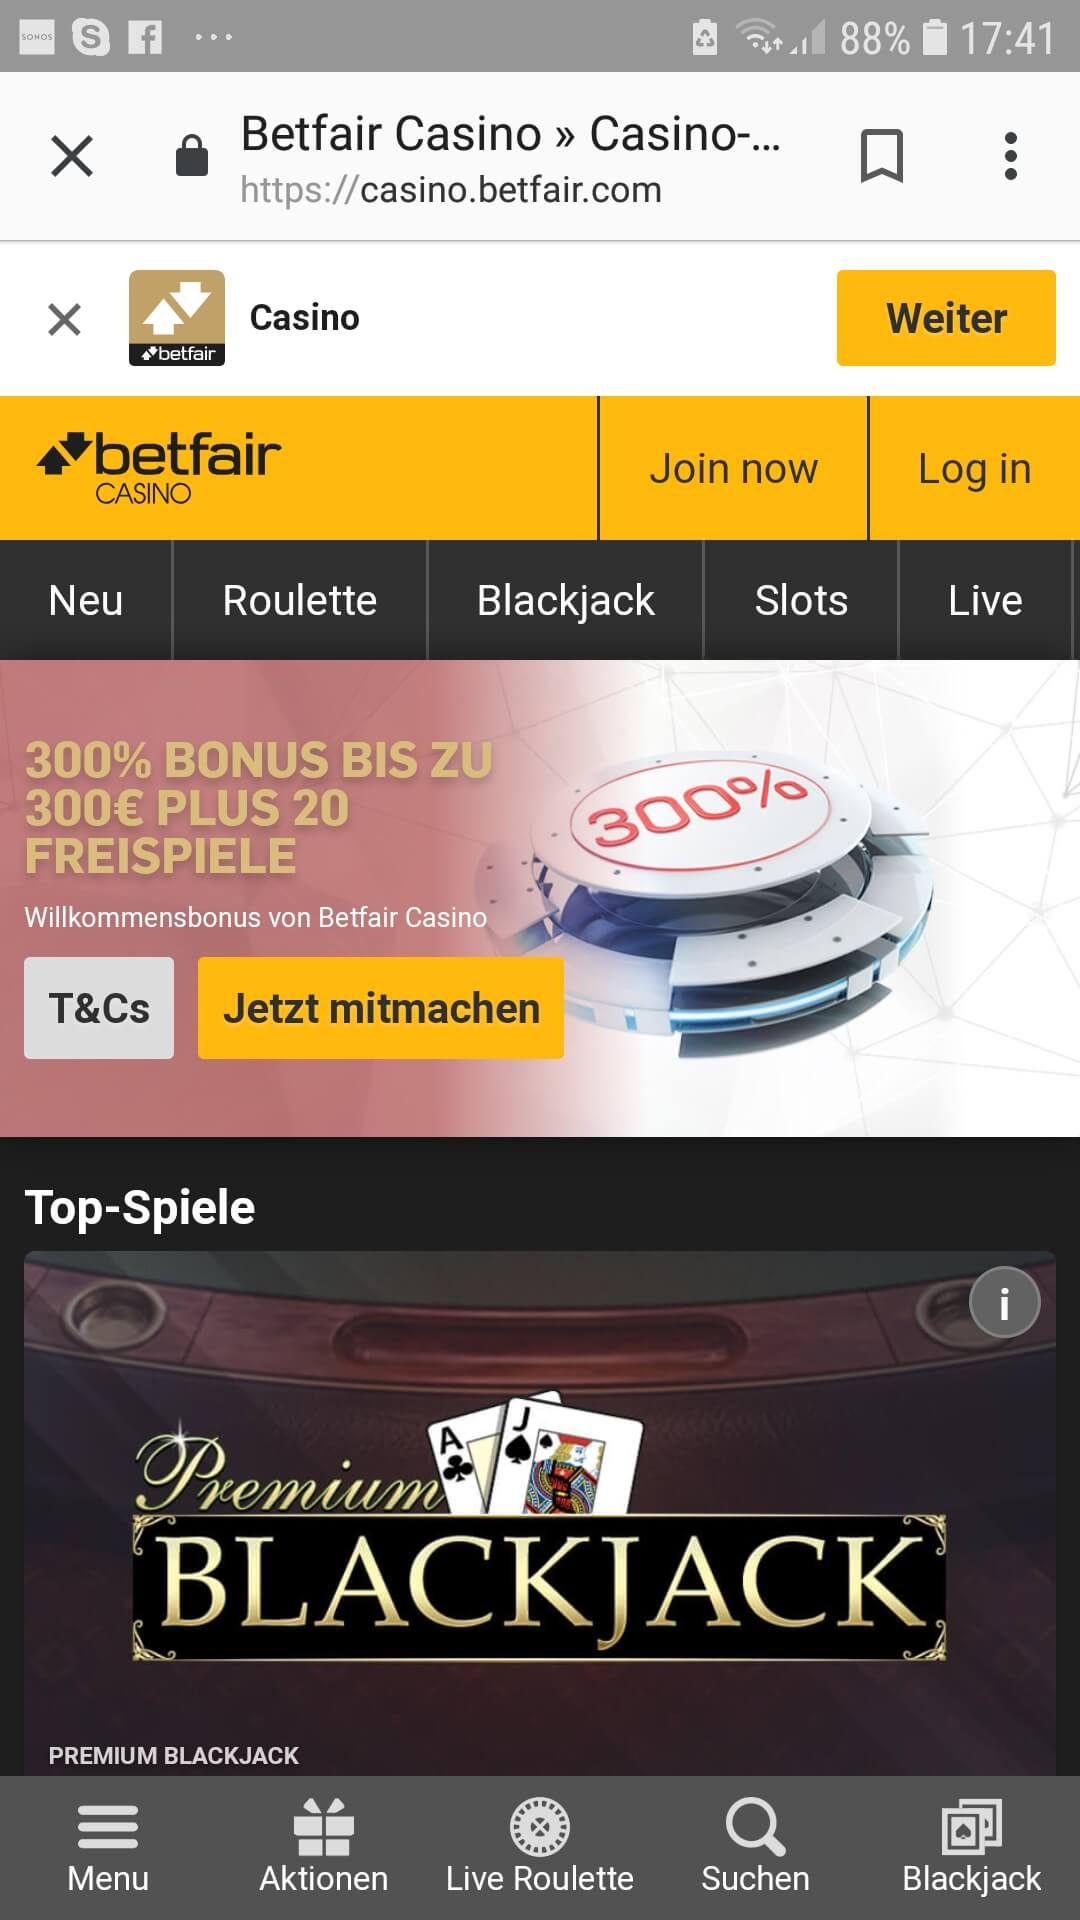 f0a085d4ce1 Betfair Casino Review | Grey Zone | Casinomeister